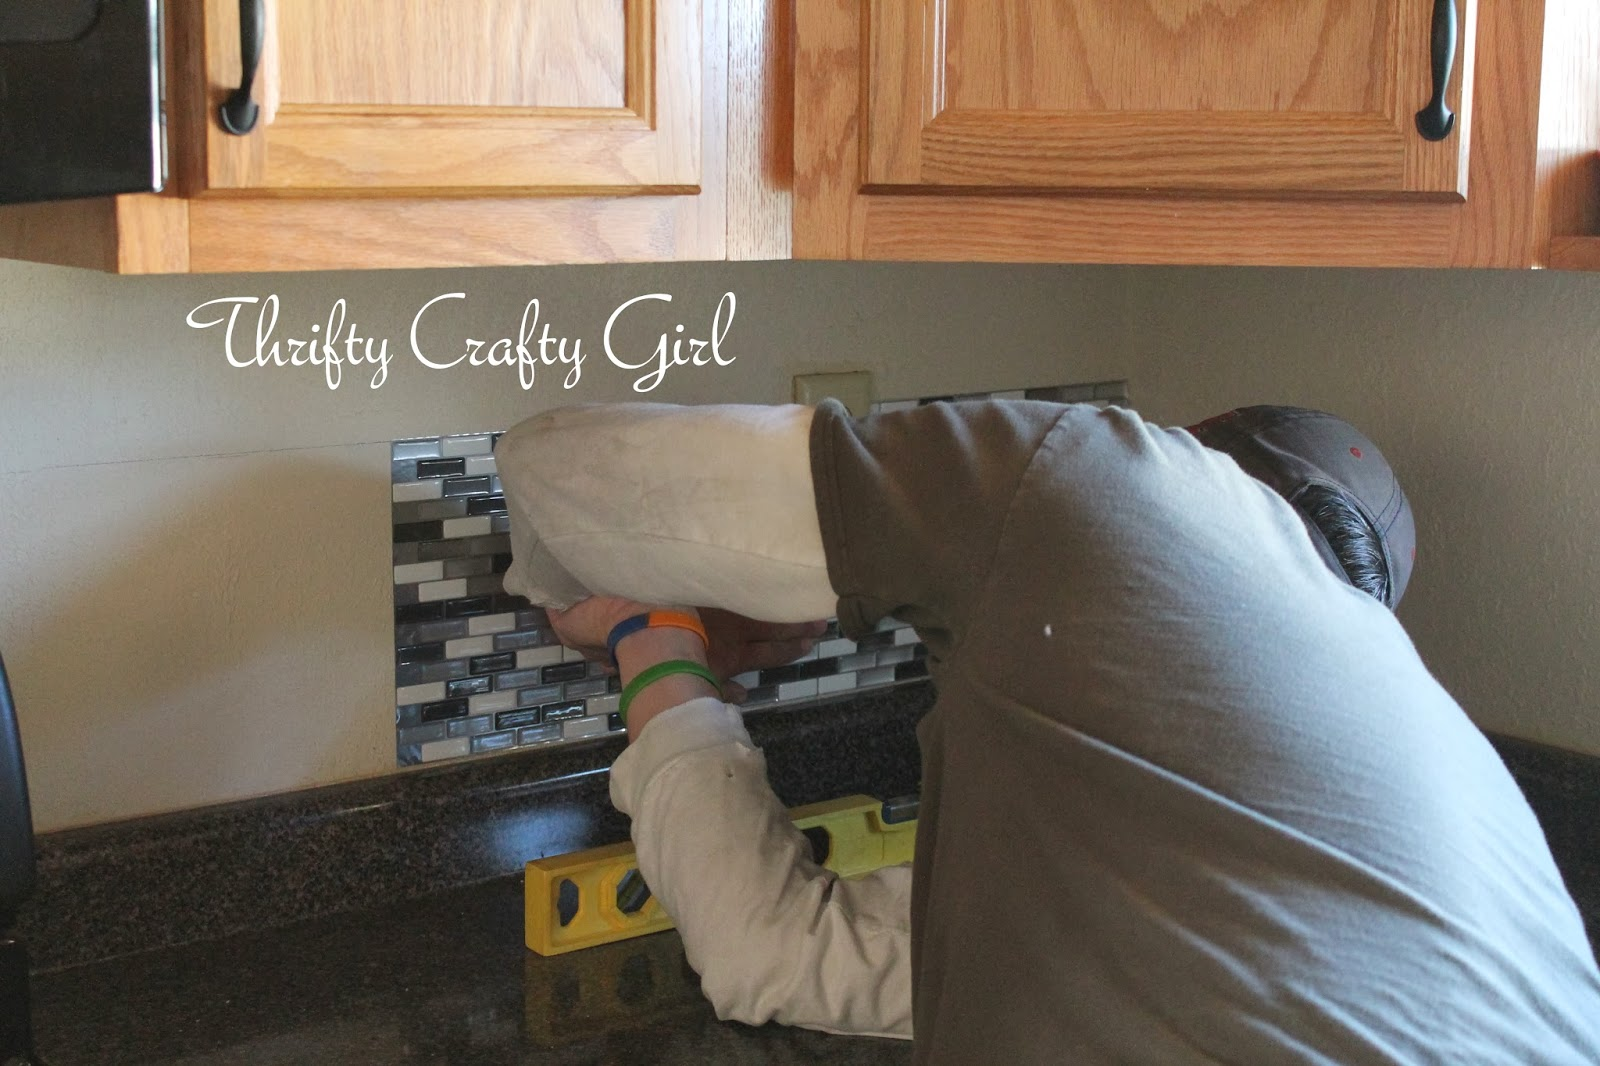 Simple Kitchen Backsplash Tiles thrifty crafty girl: easy kitchen backsplash with smart tiles